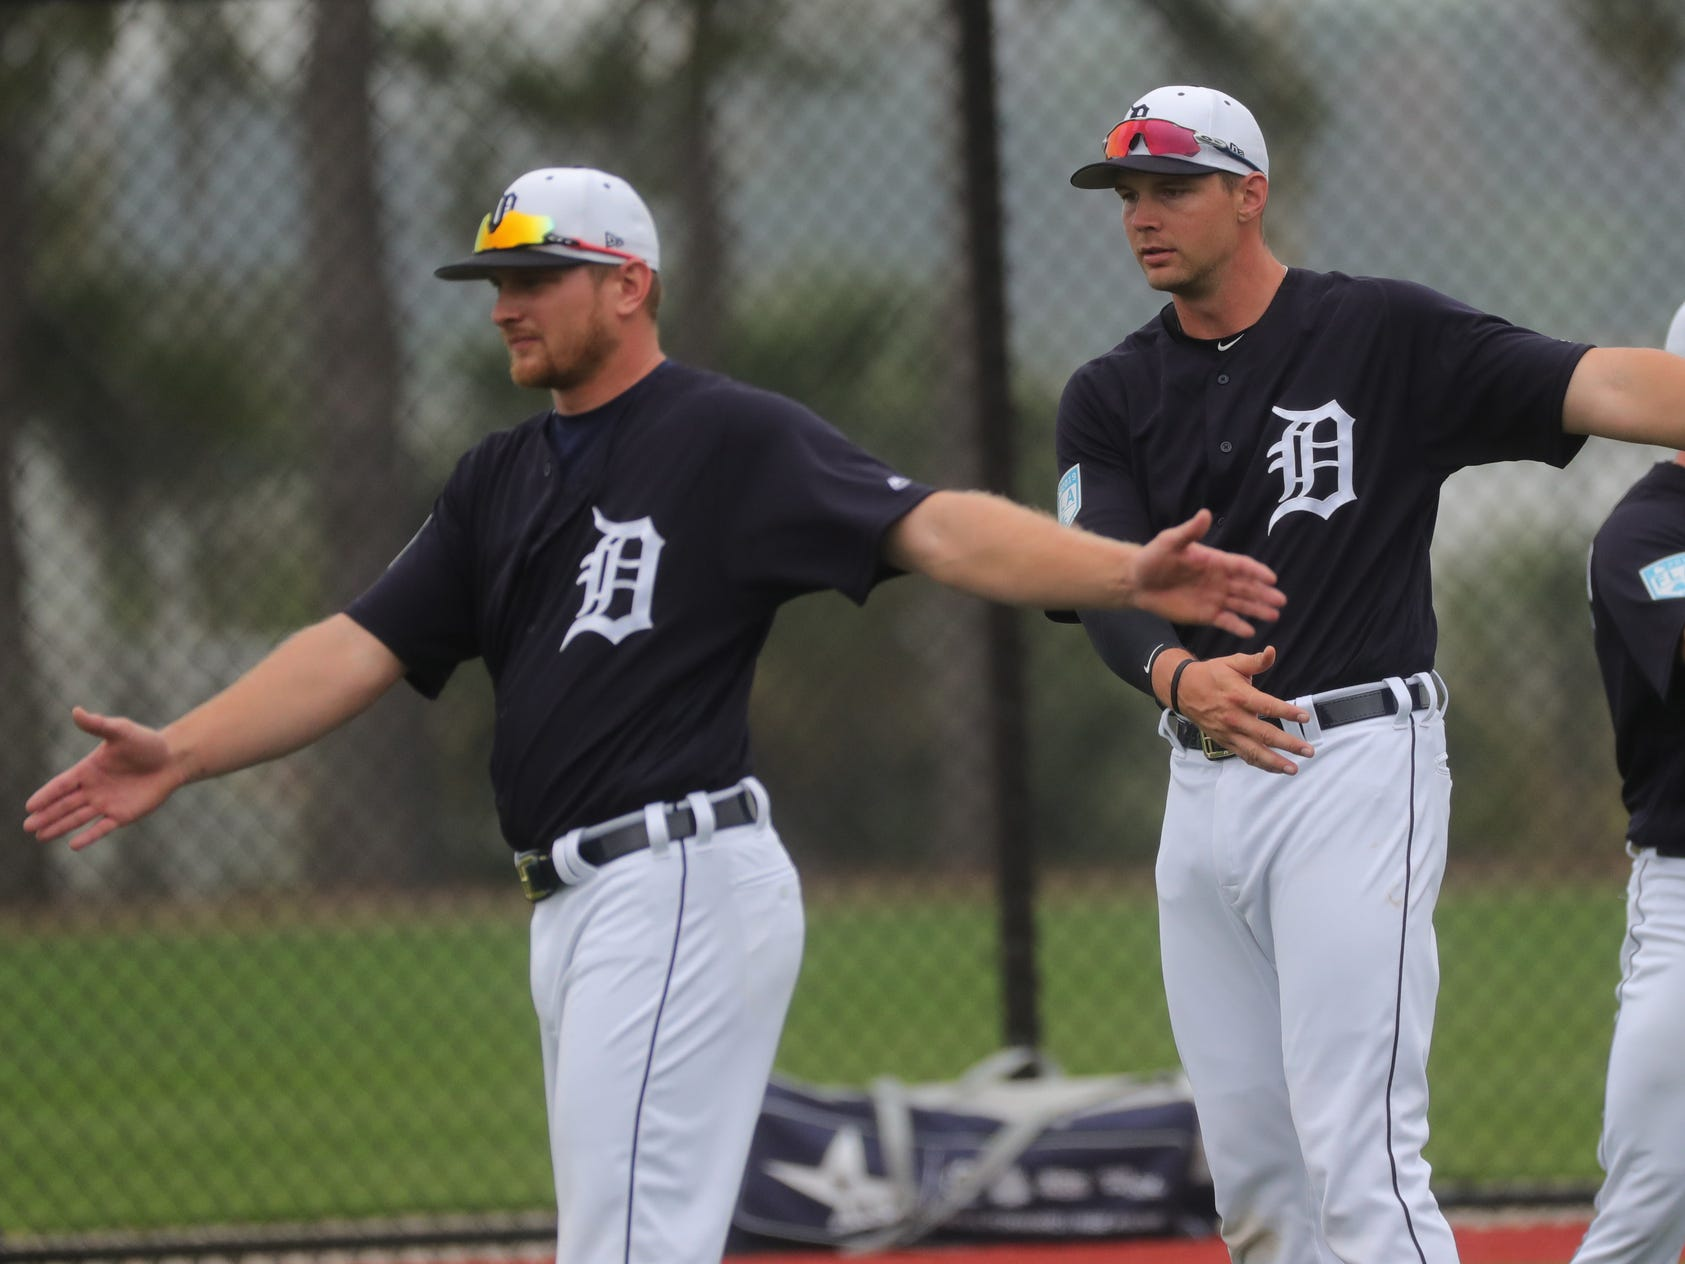 Tigers catchers John Hicks, left, and Grayson Greiner stretch during the first full team spring training practice on Monday, Feb. 18, 2019, at Joker Marchant Stadium in Lakeland, Florida.